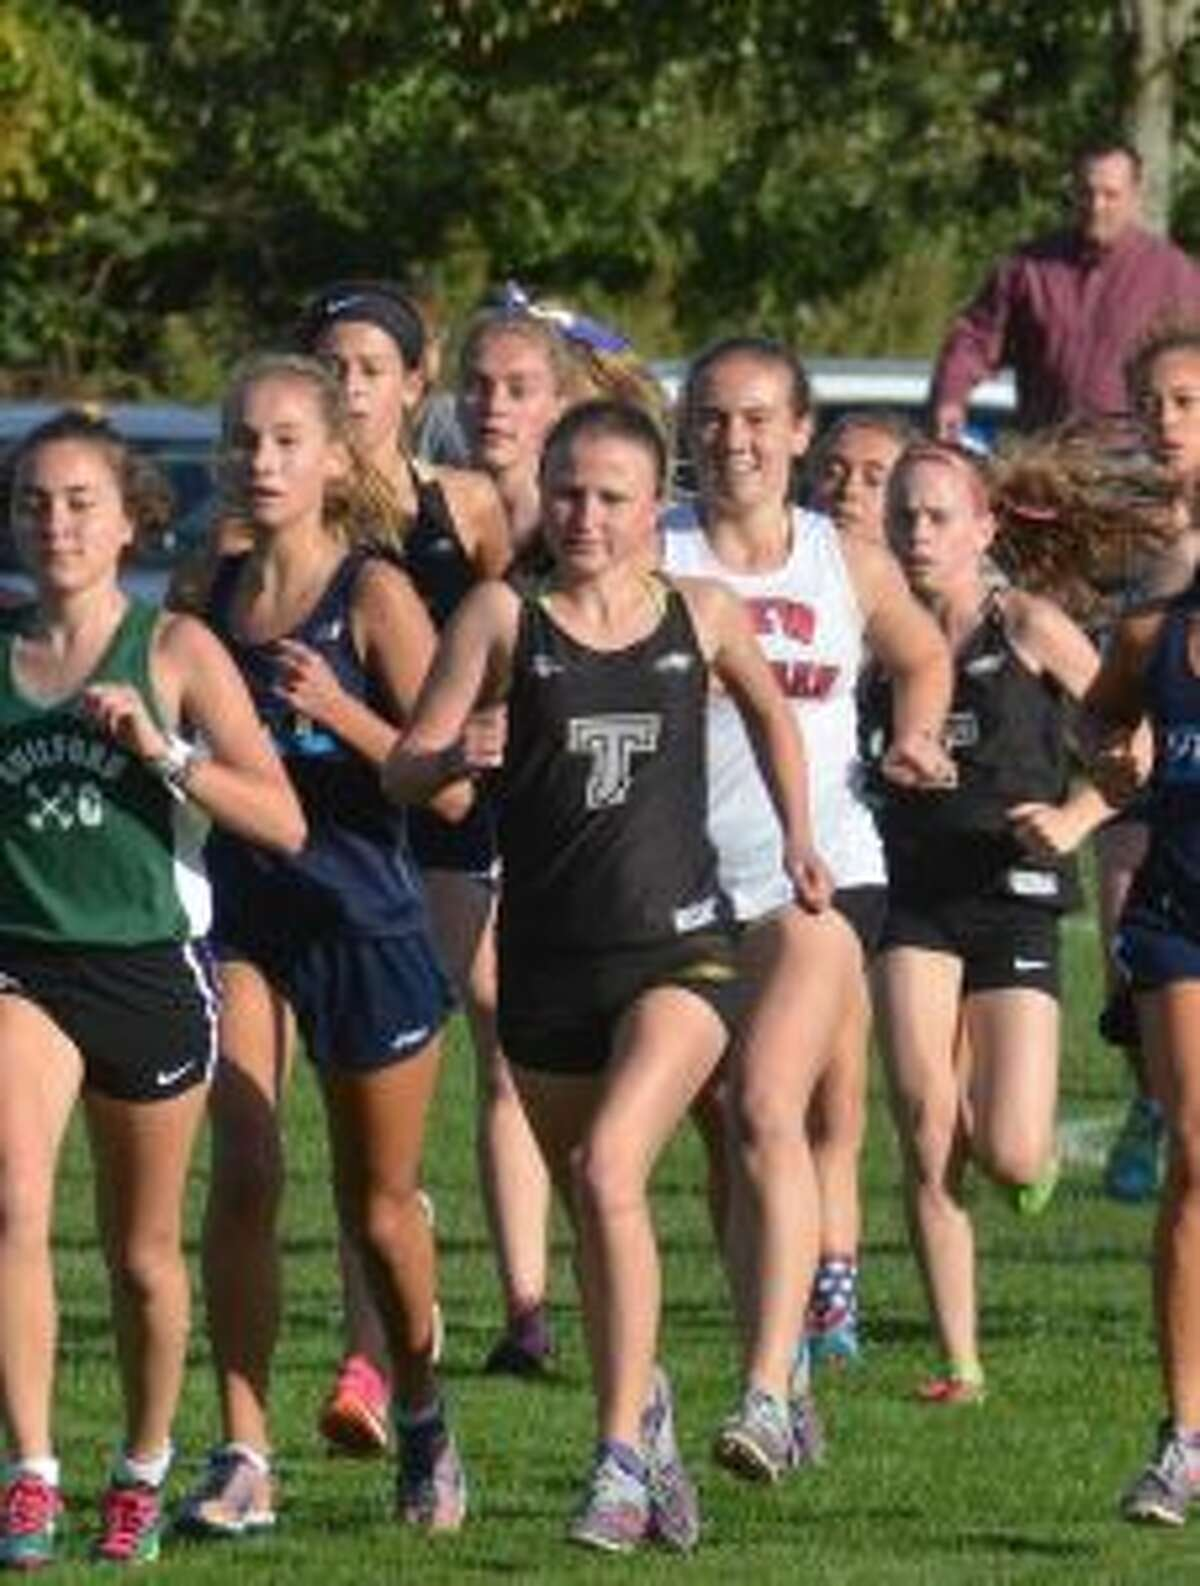 Trumbull will next compete at the Wickham Invitational